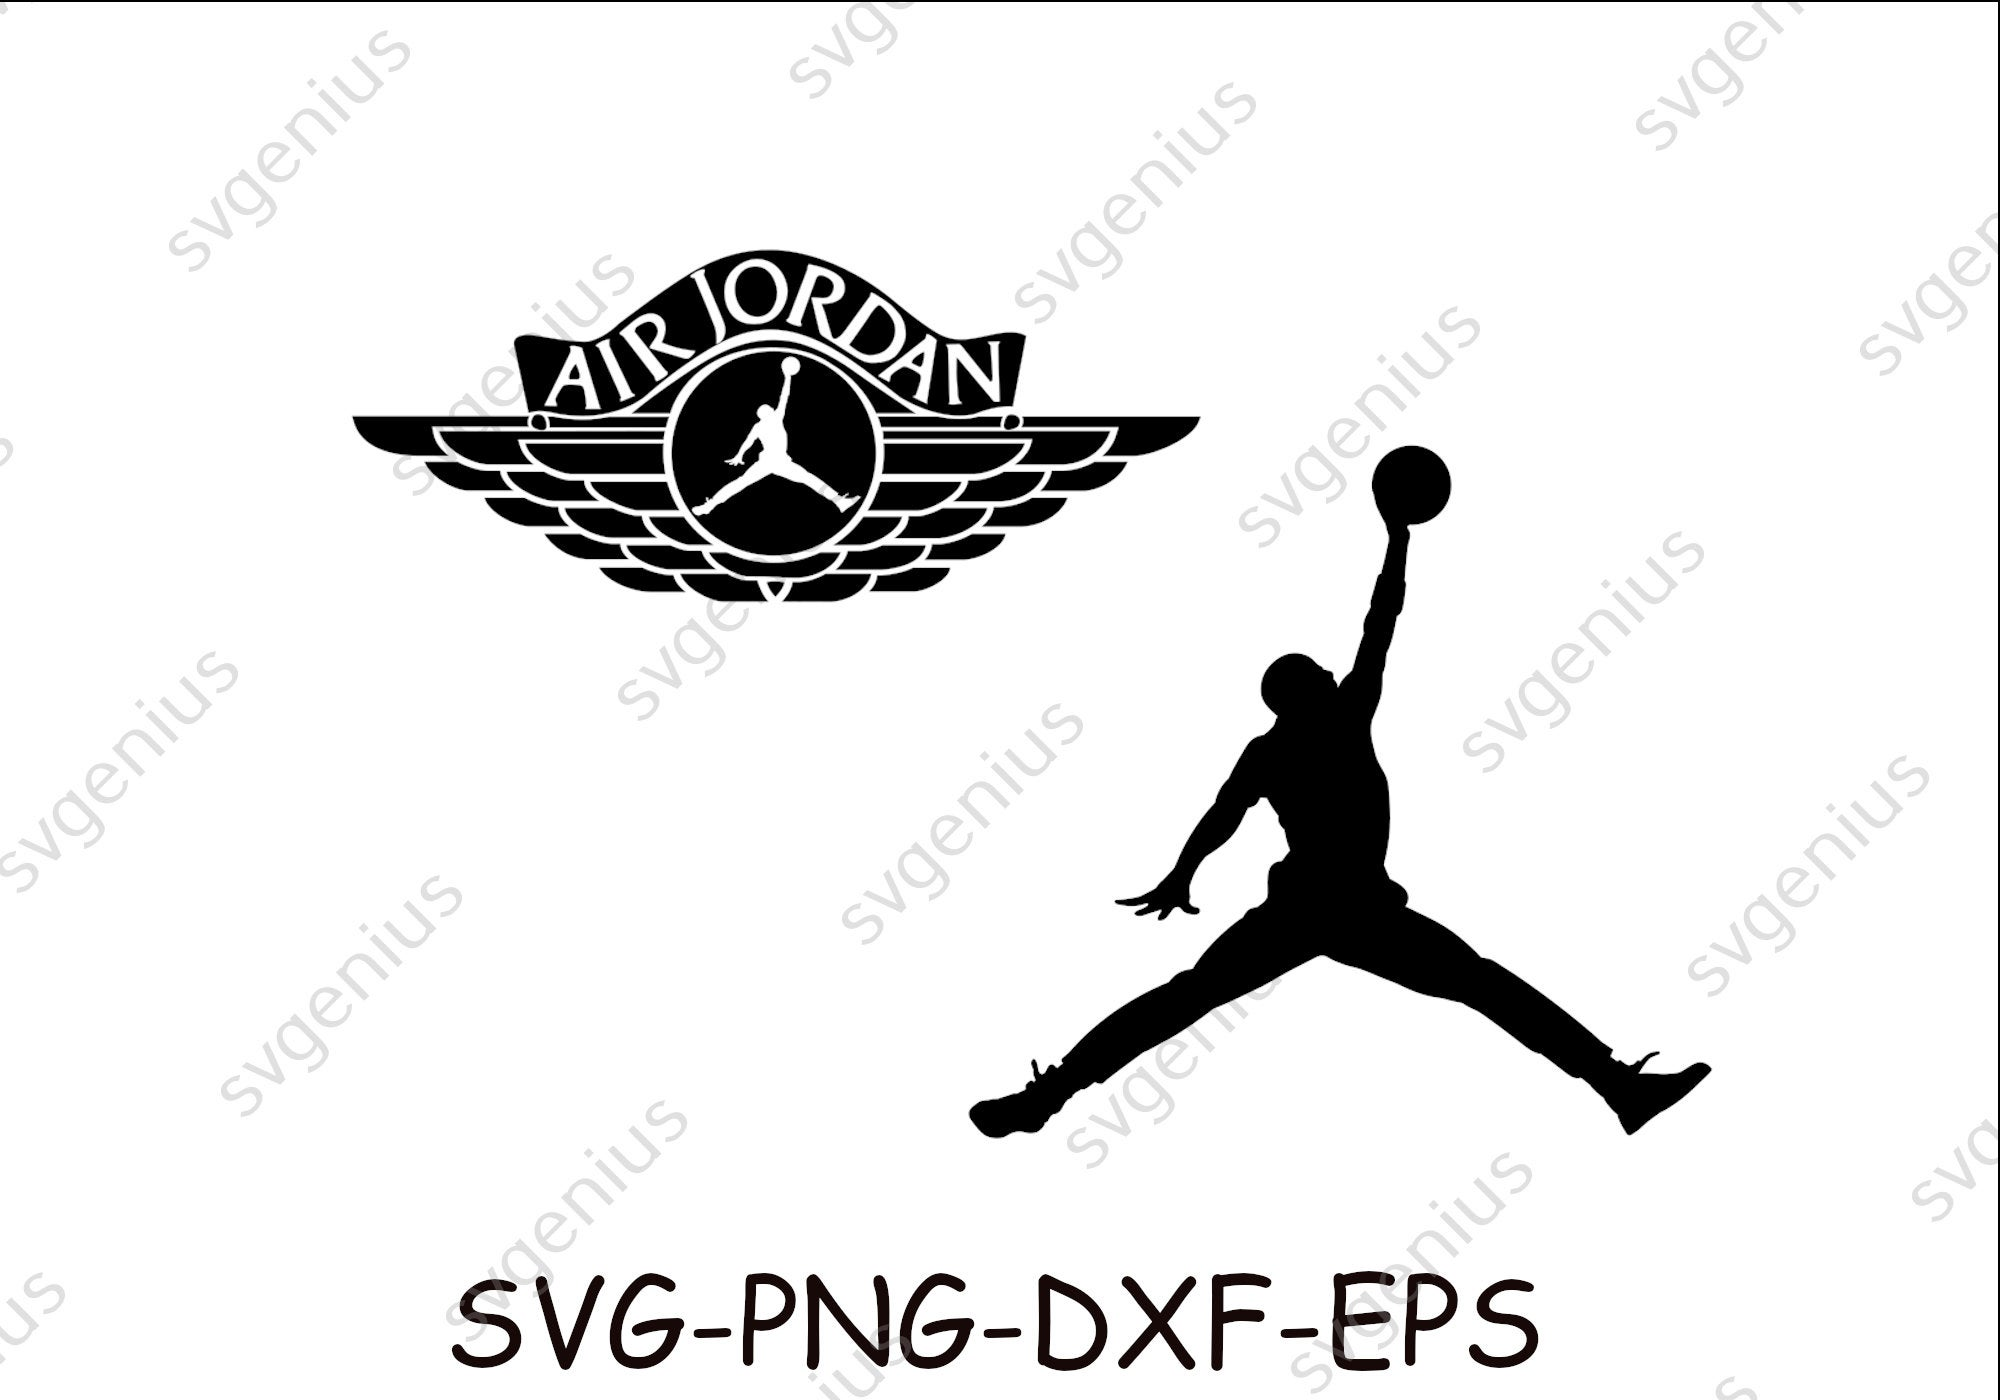 air jordan svg #744, Download drawings